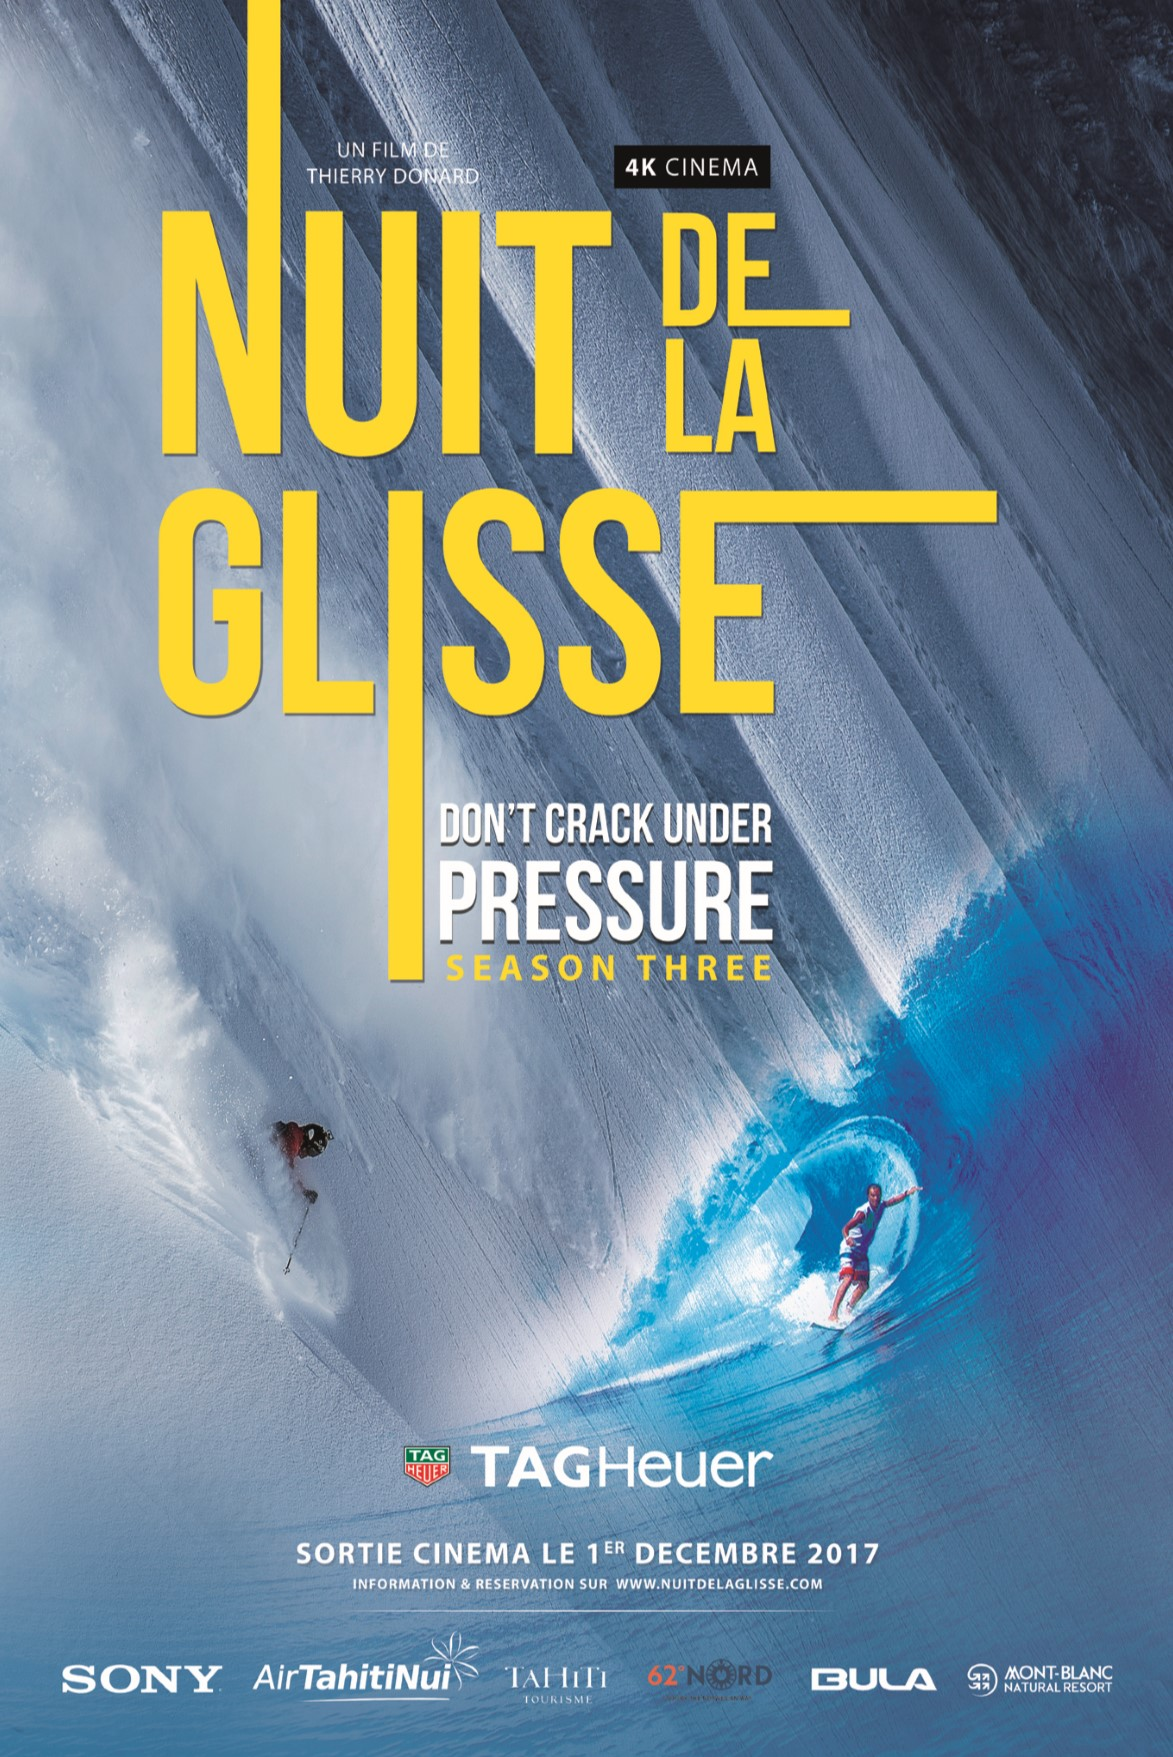 Télécharger LA NUIT DE LA GLISSE Don't Crack Under Pressure season three TRUEFRENCH VF Uptobox